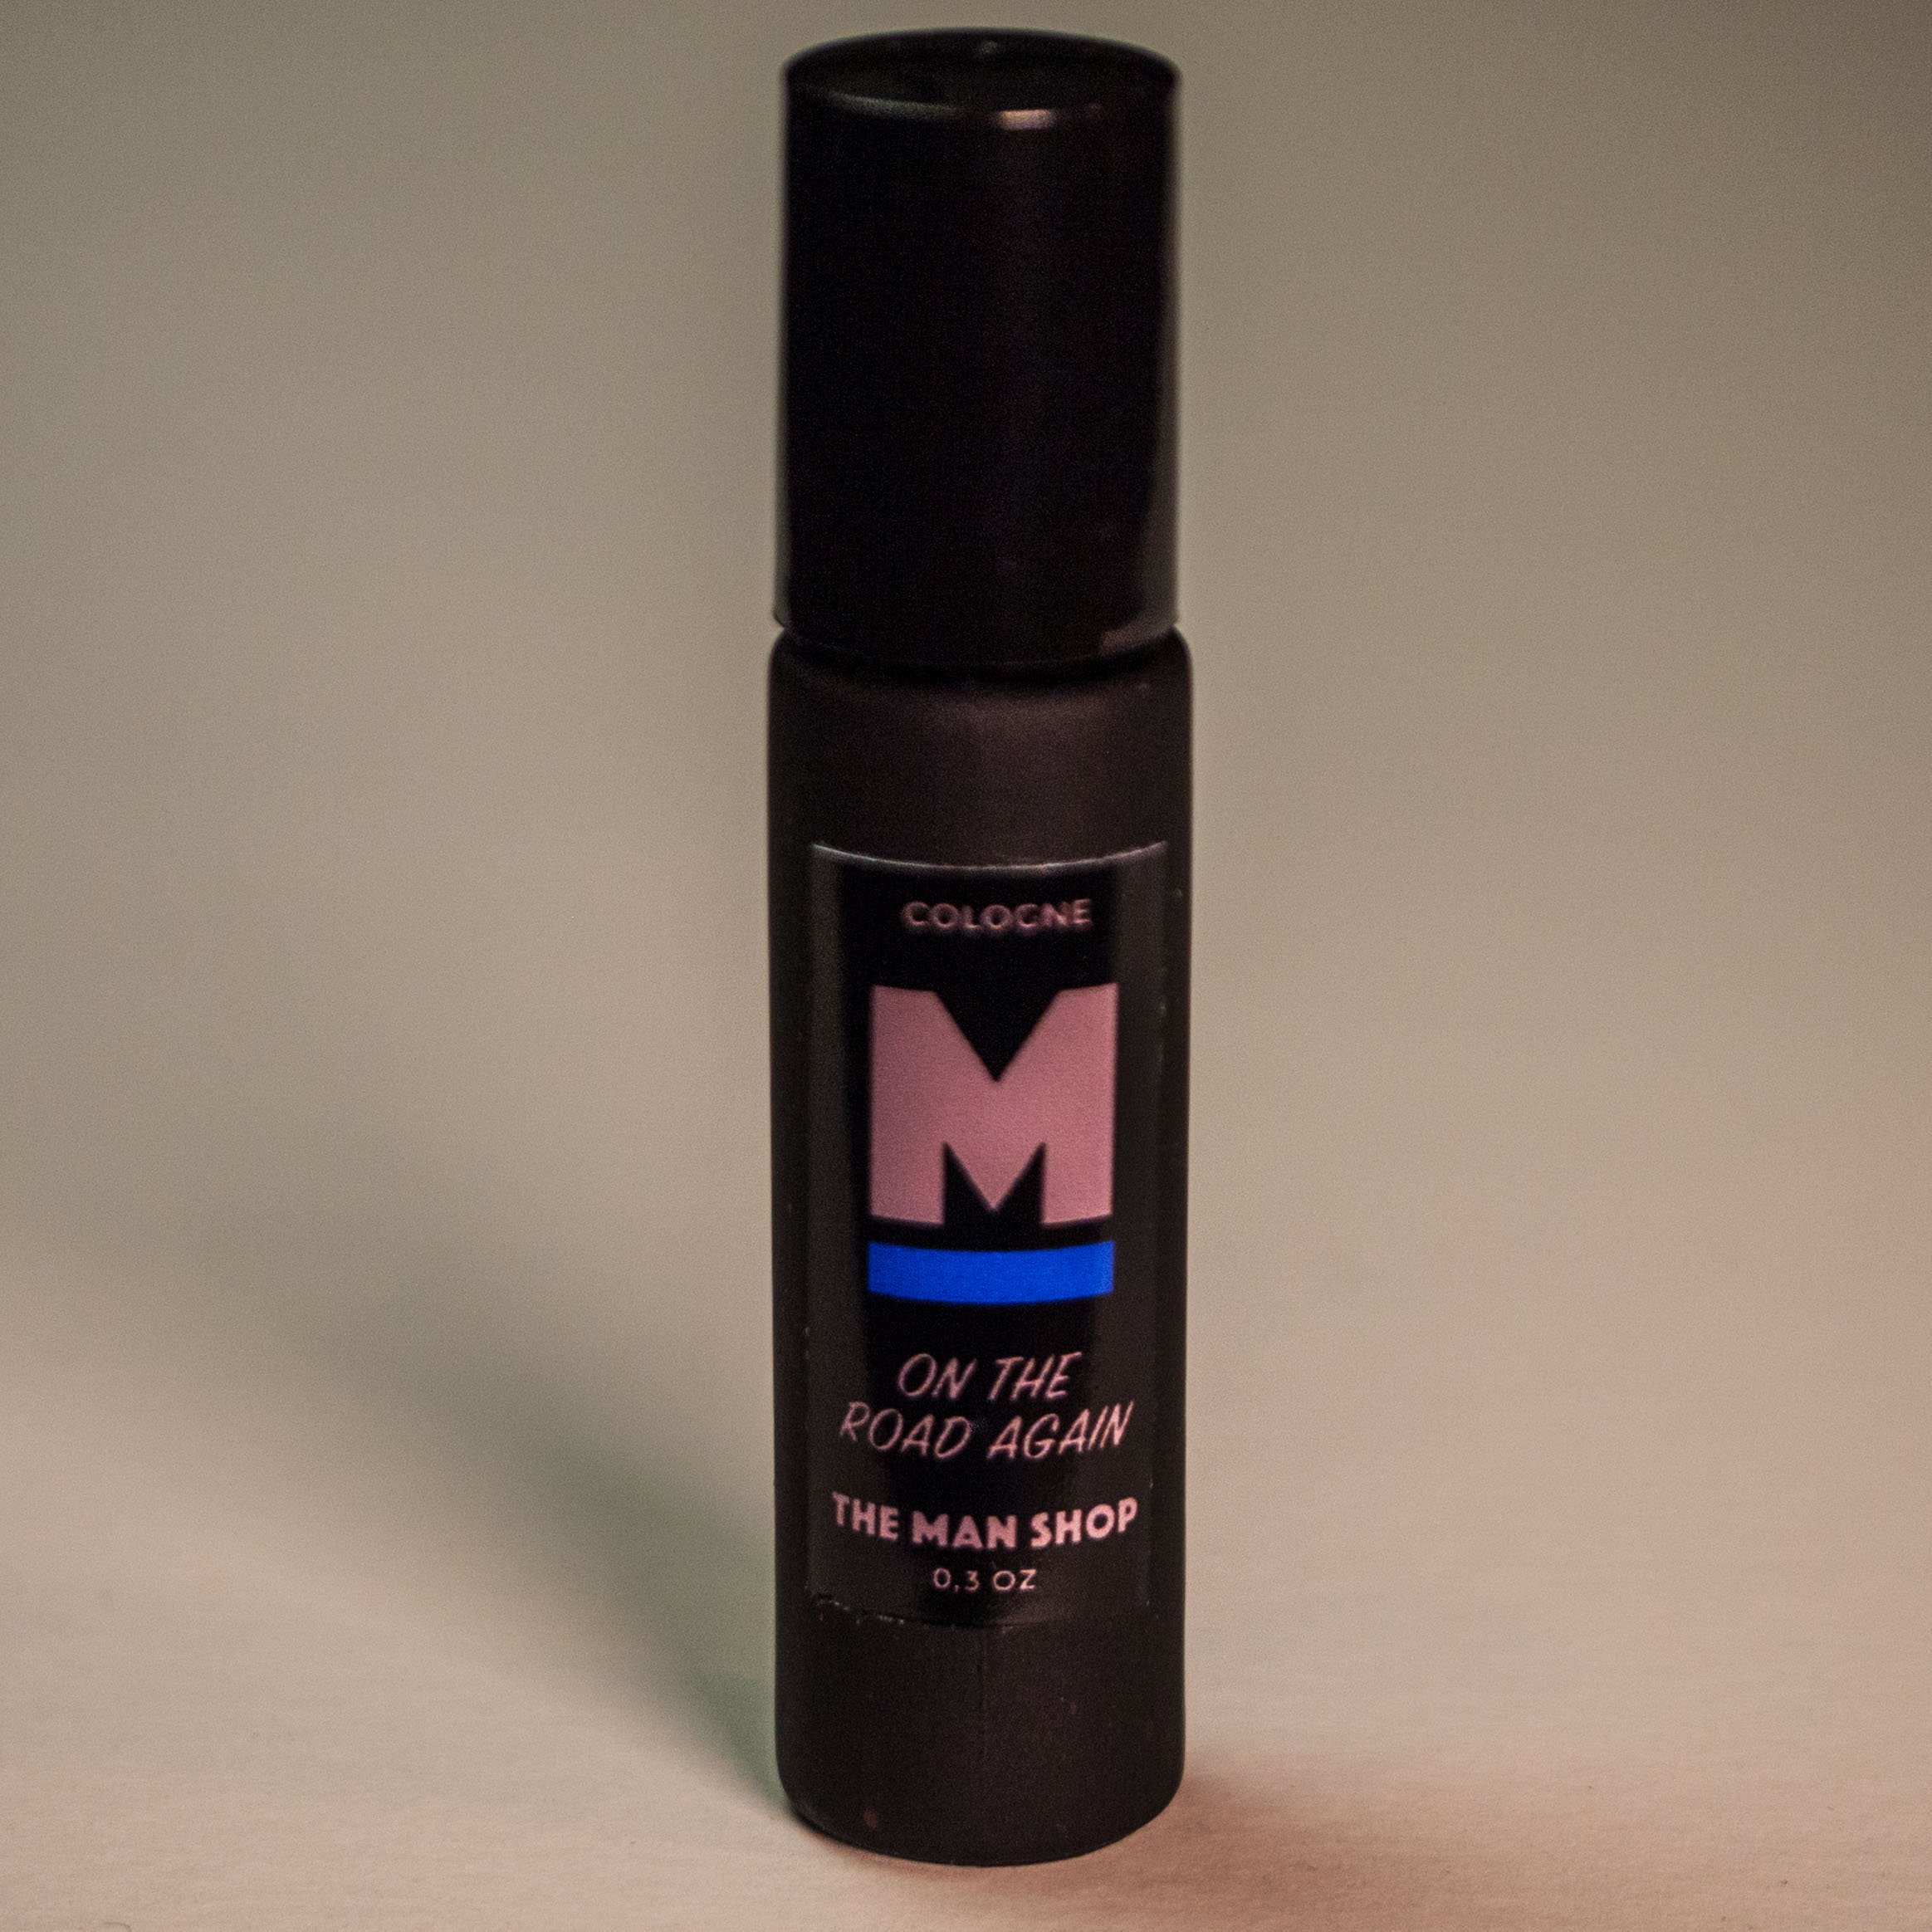 On The Road Again Men's Rollerball Cologne (0.3 oz) The Man Shop